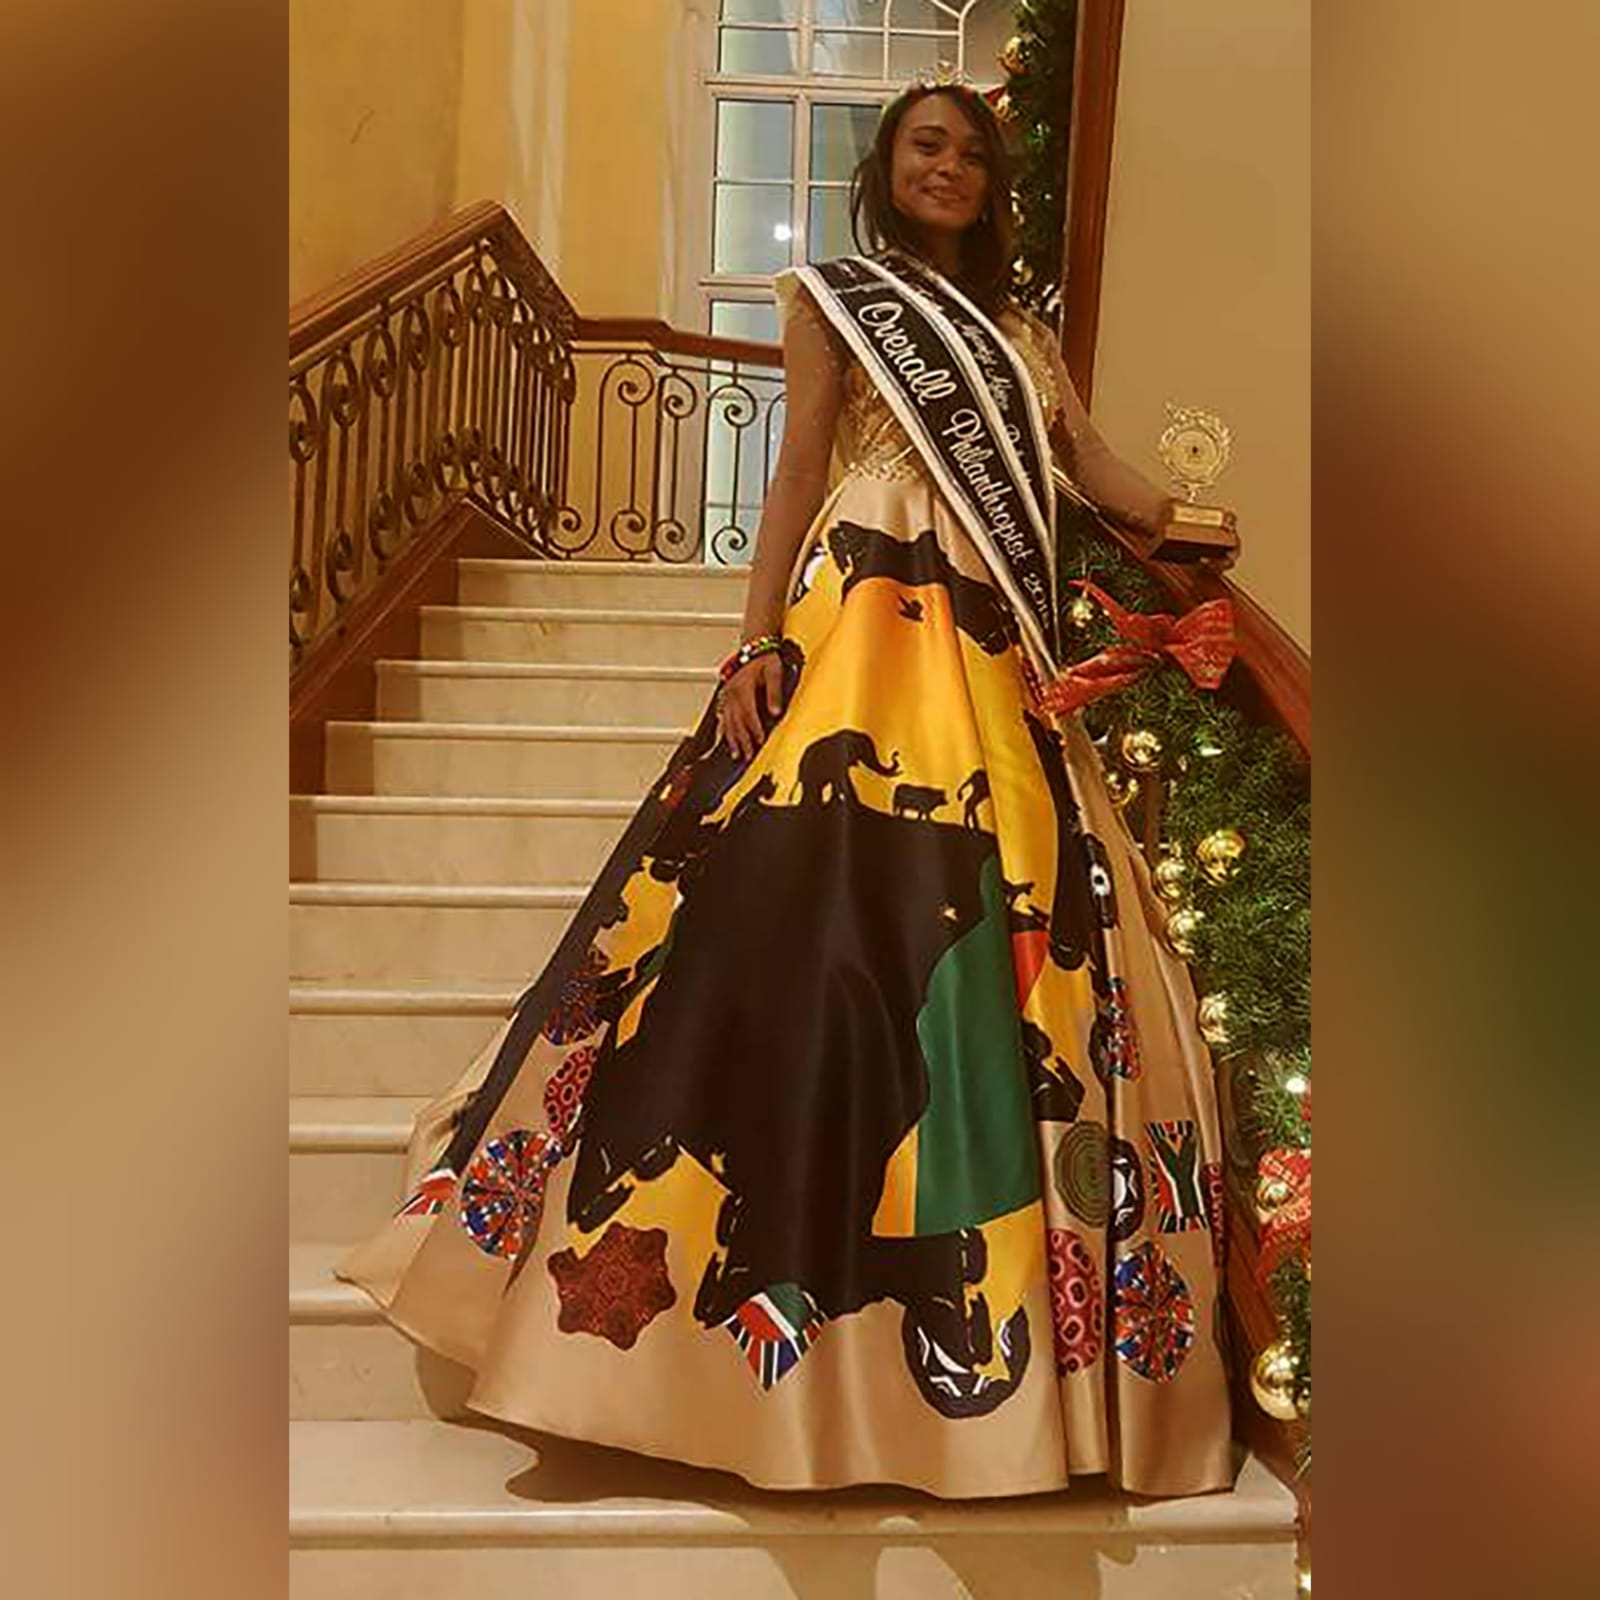 Gold ball gown for beauty pageant 6 gold ball gown for beauty pageant, bodice detailed in gold beadwork with sheer long sleeves, with a v open back. With traditional kaleidoscope print